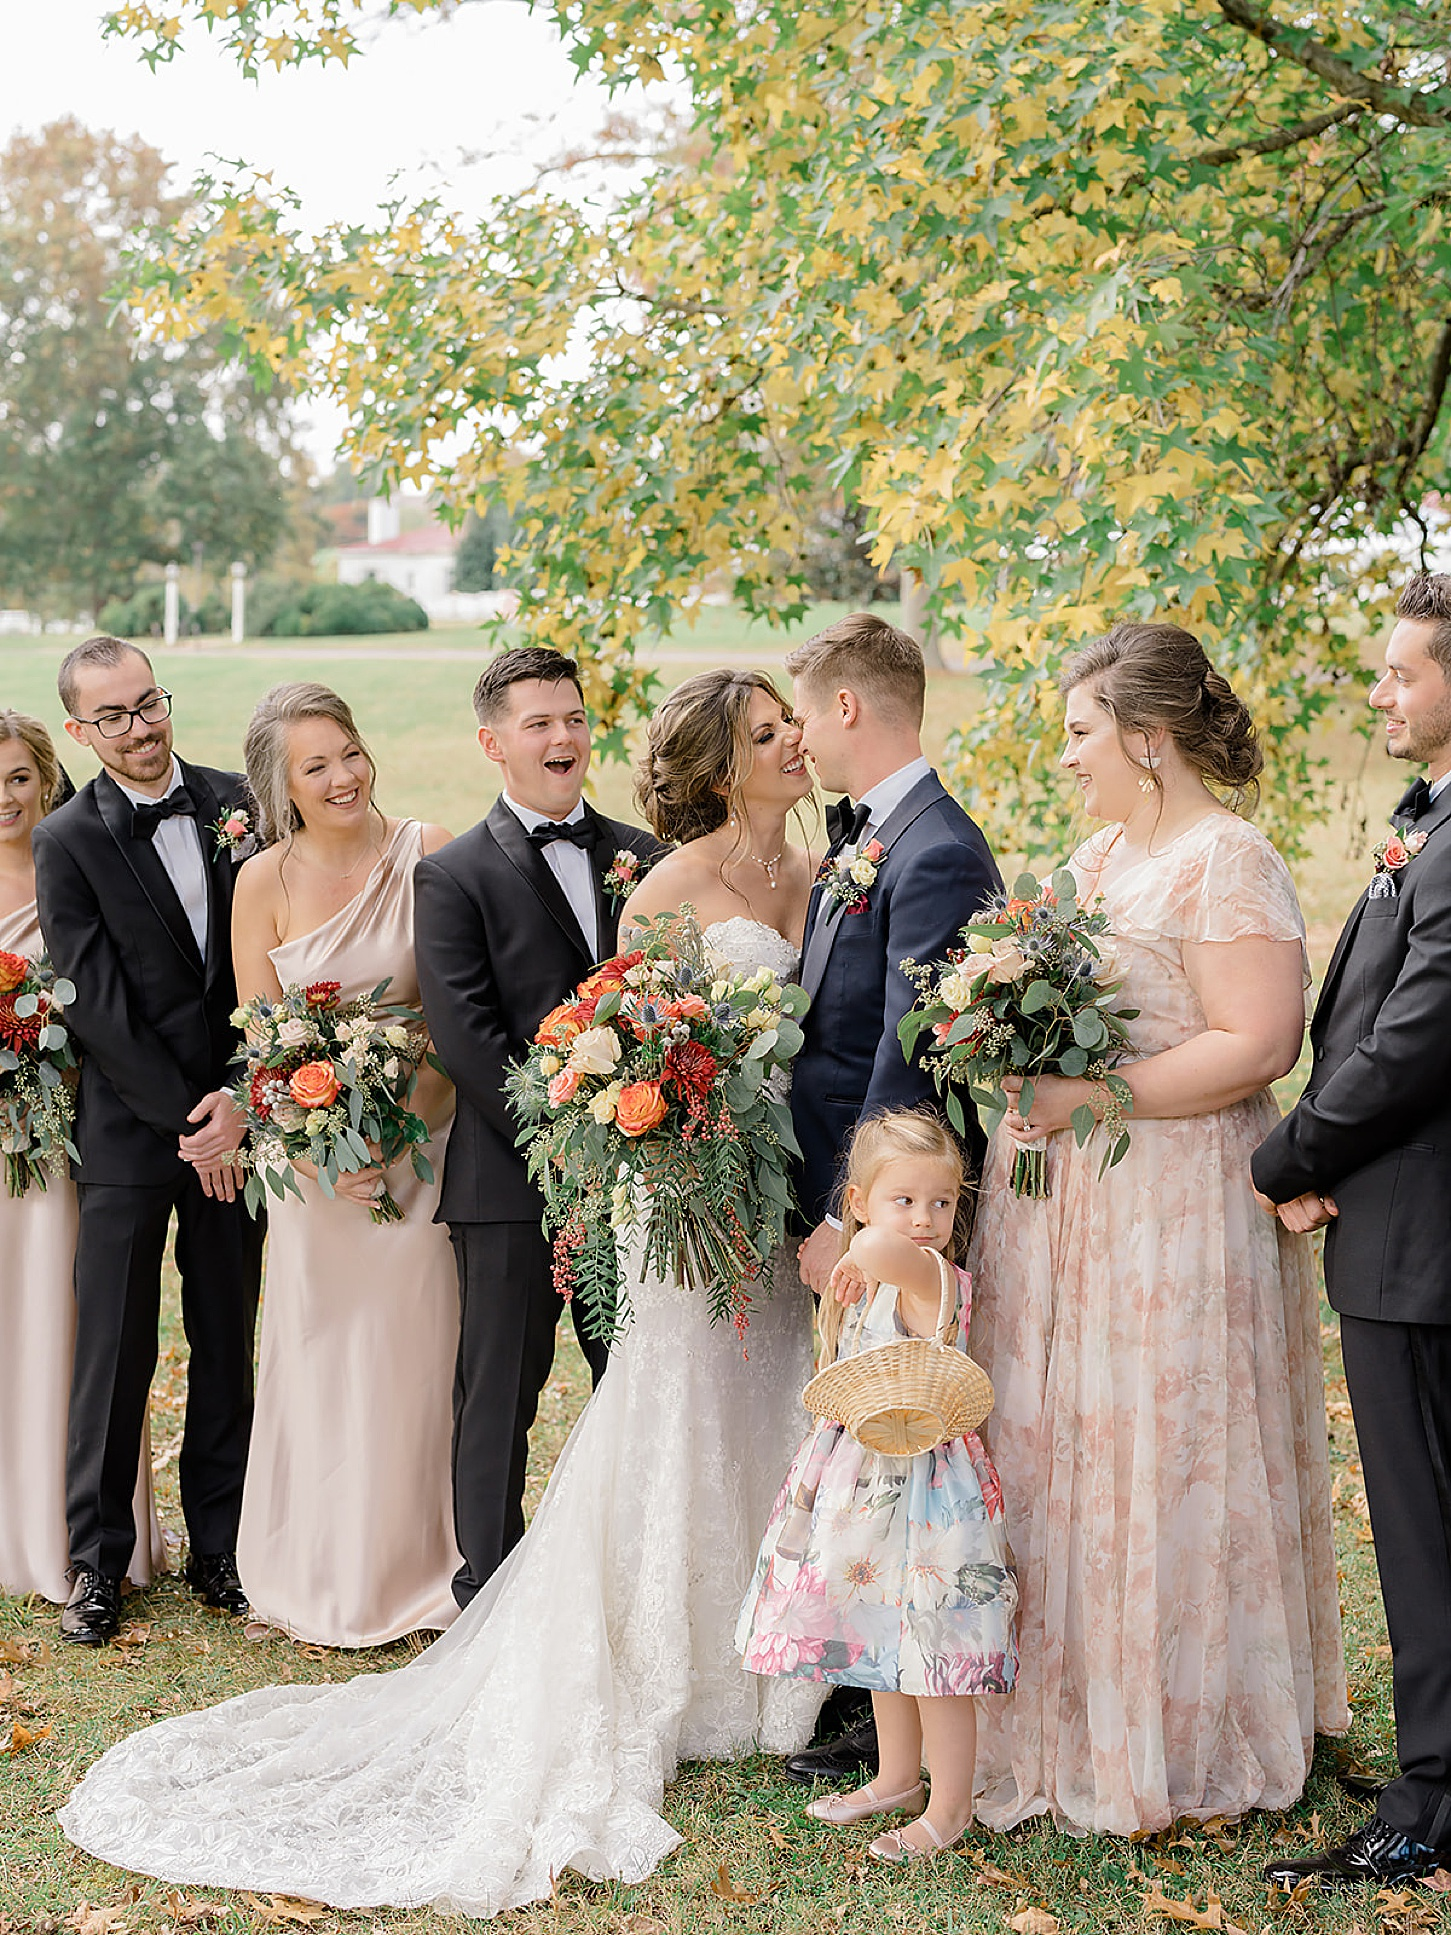 Tennessee Destination Wedding Photography by Magdalena Studios 0035